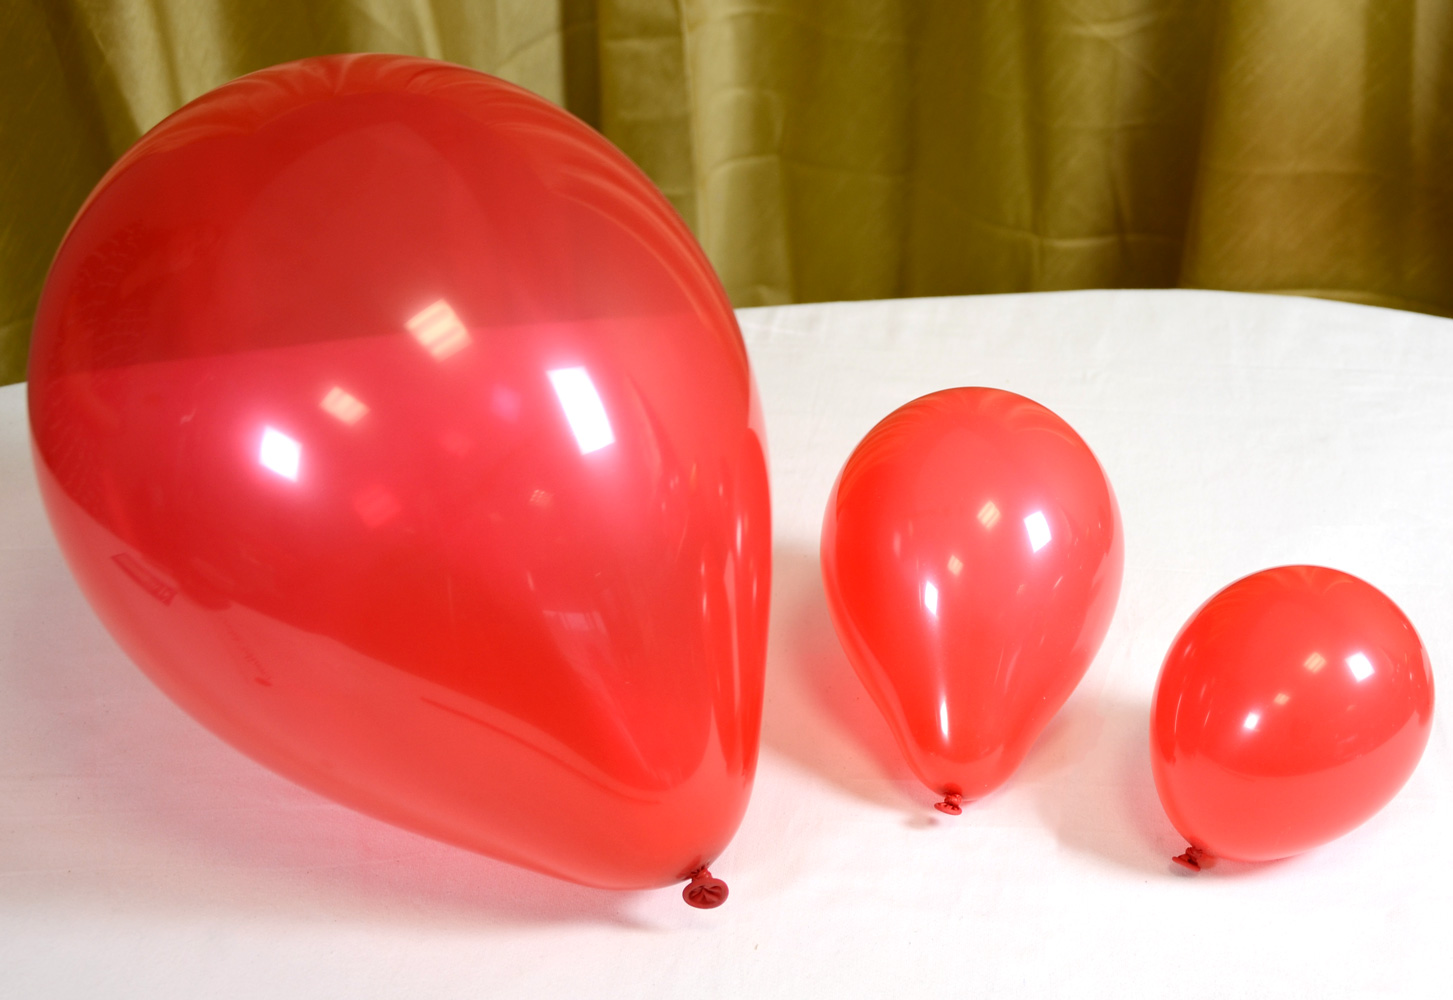 Three balloon sizes